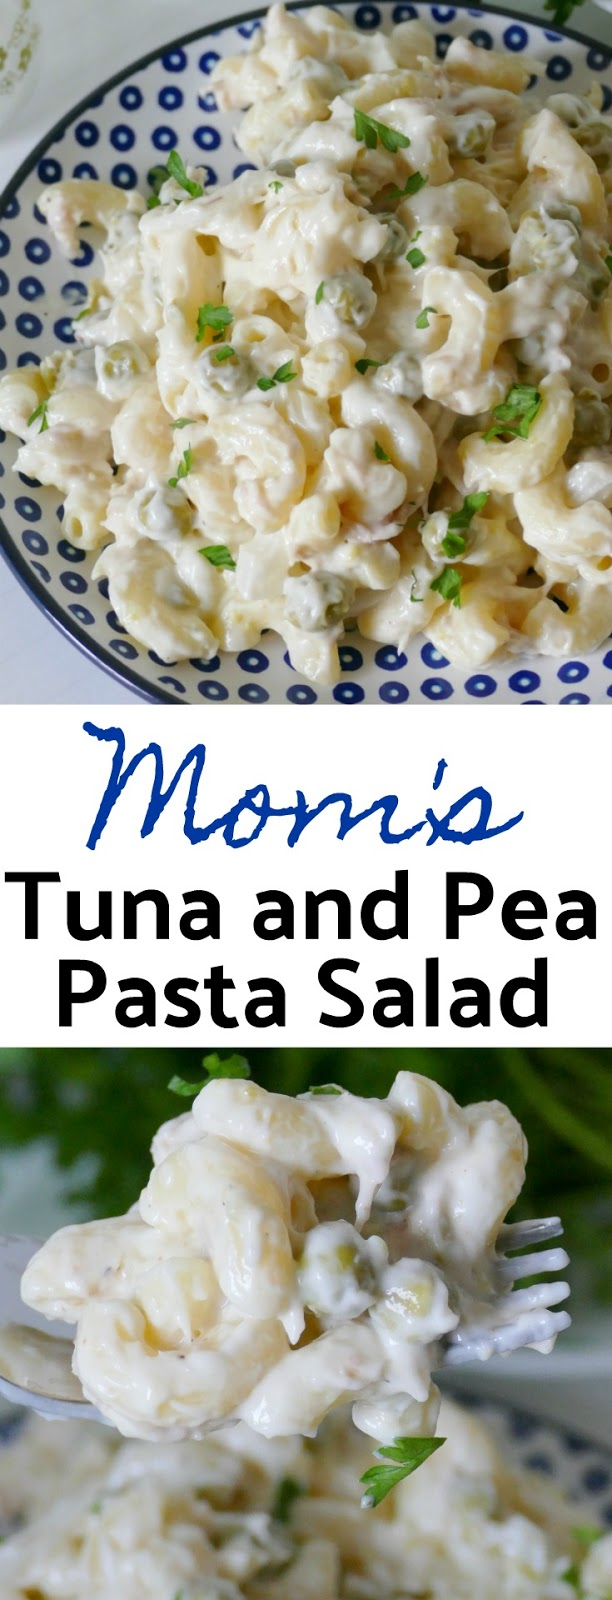 This tried and true family favorite is simple, affordable and delicious! Perfect for picnics, BBQ's, game day or any potluck! Macaroni noodles, canned tuna and canned peas make this salad super easy to make!